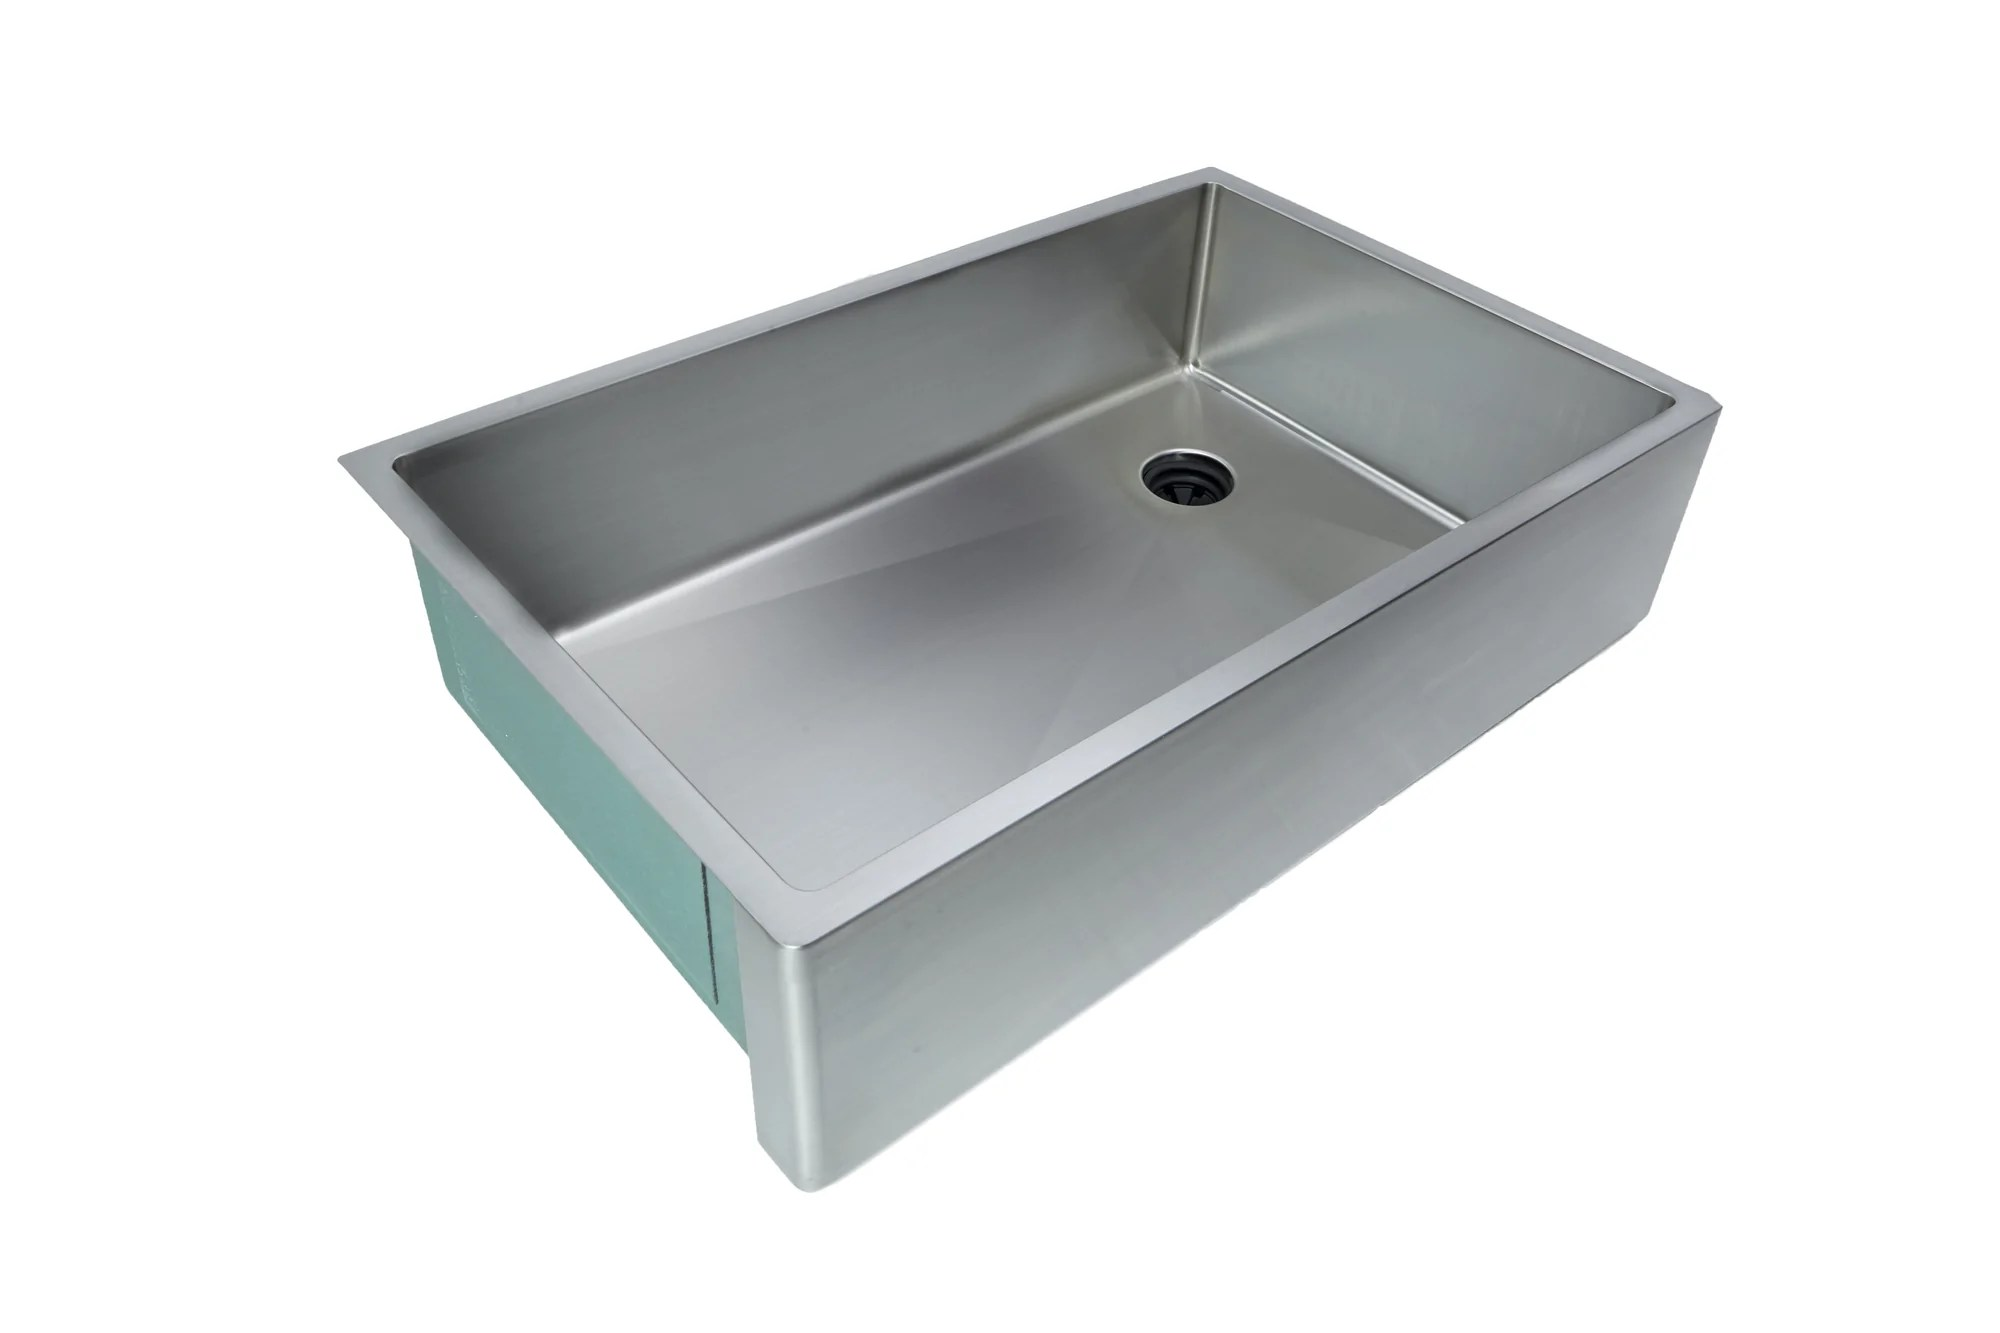 33 apron front sink 8 depth single bowl offset drain right 5as33r 8